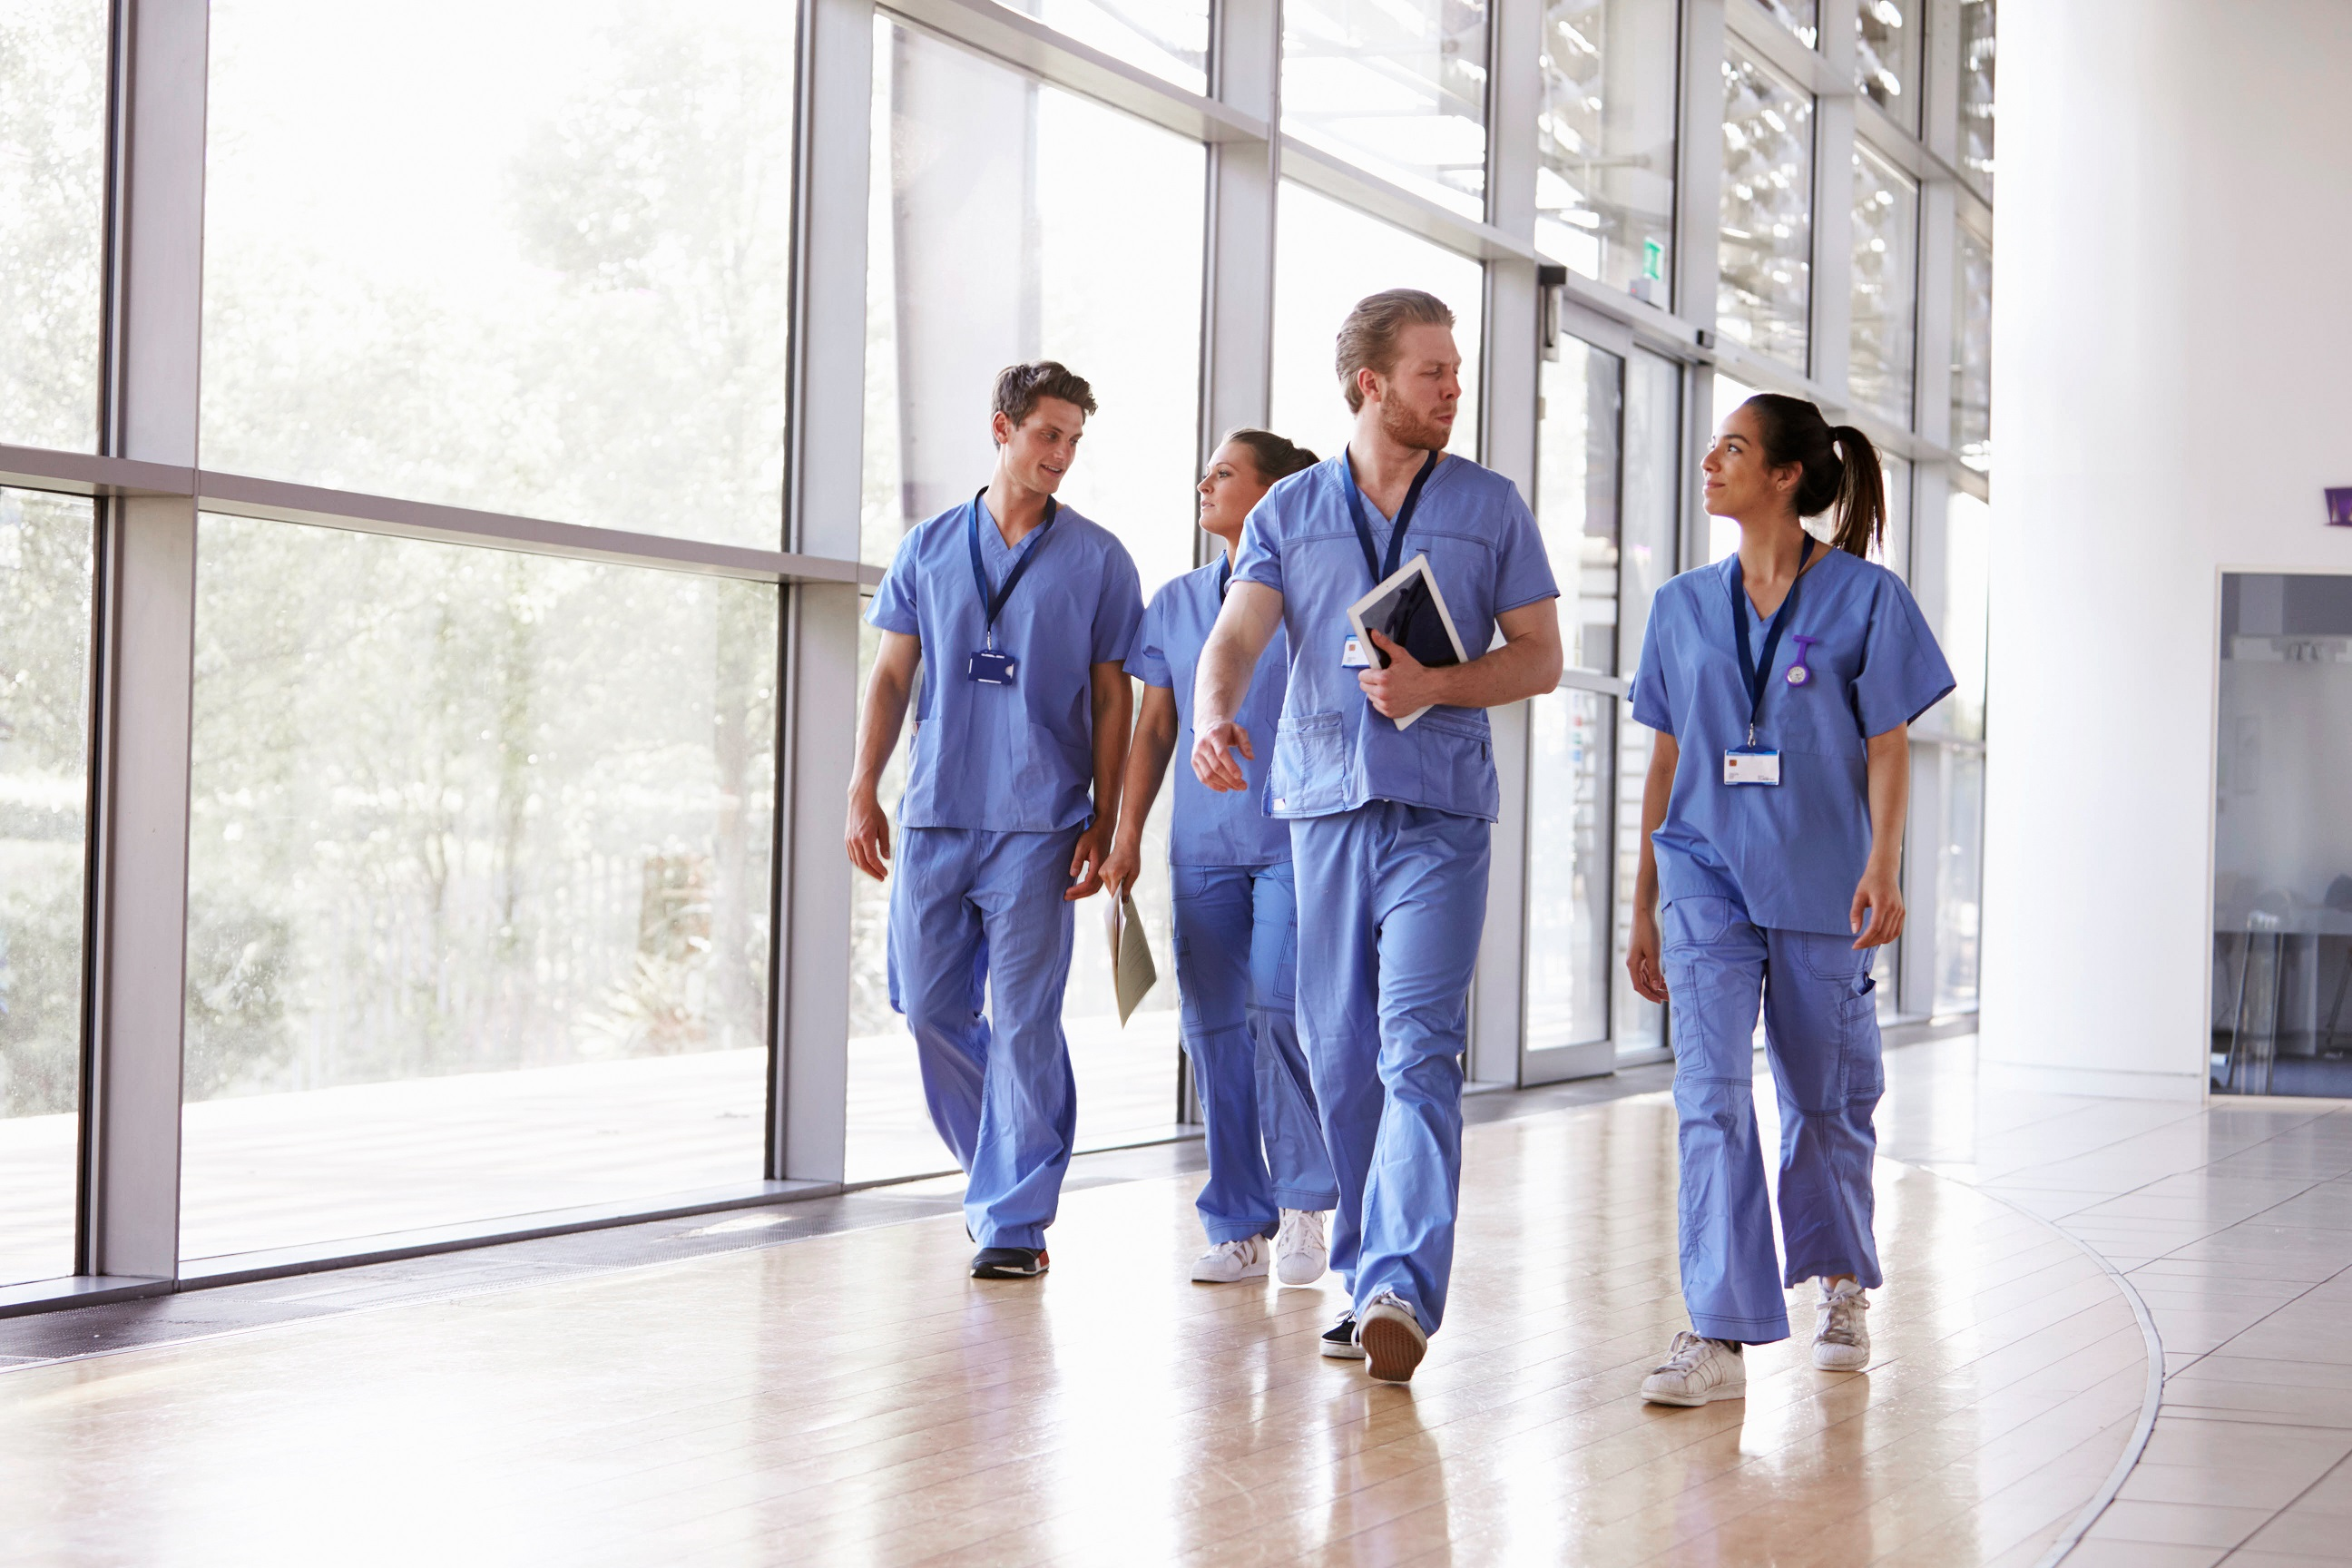 Healthcare workers walking down hallway